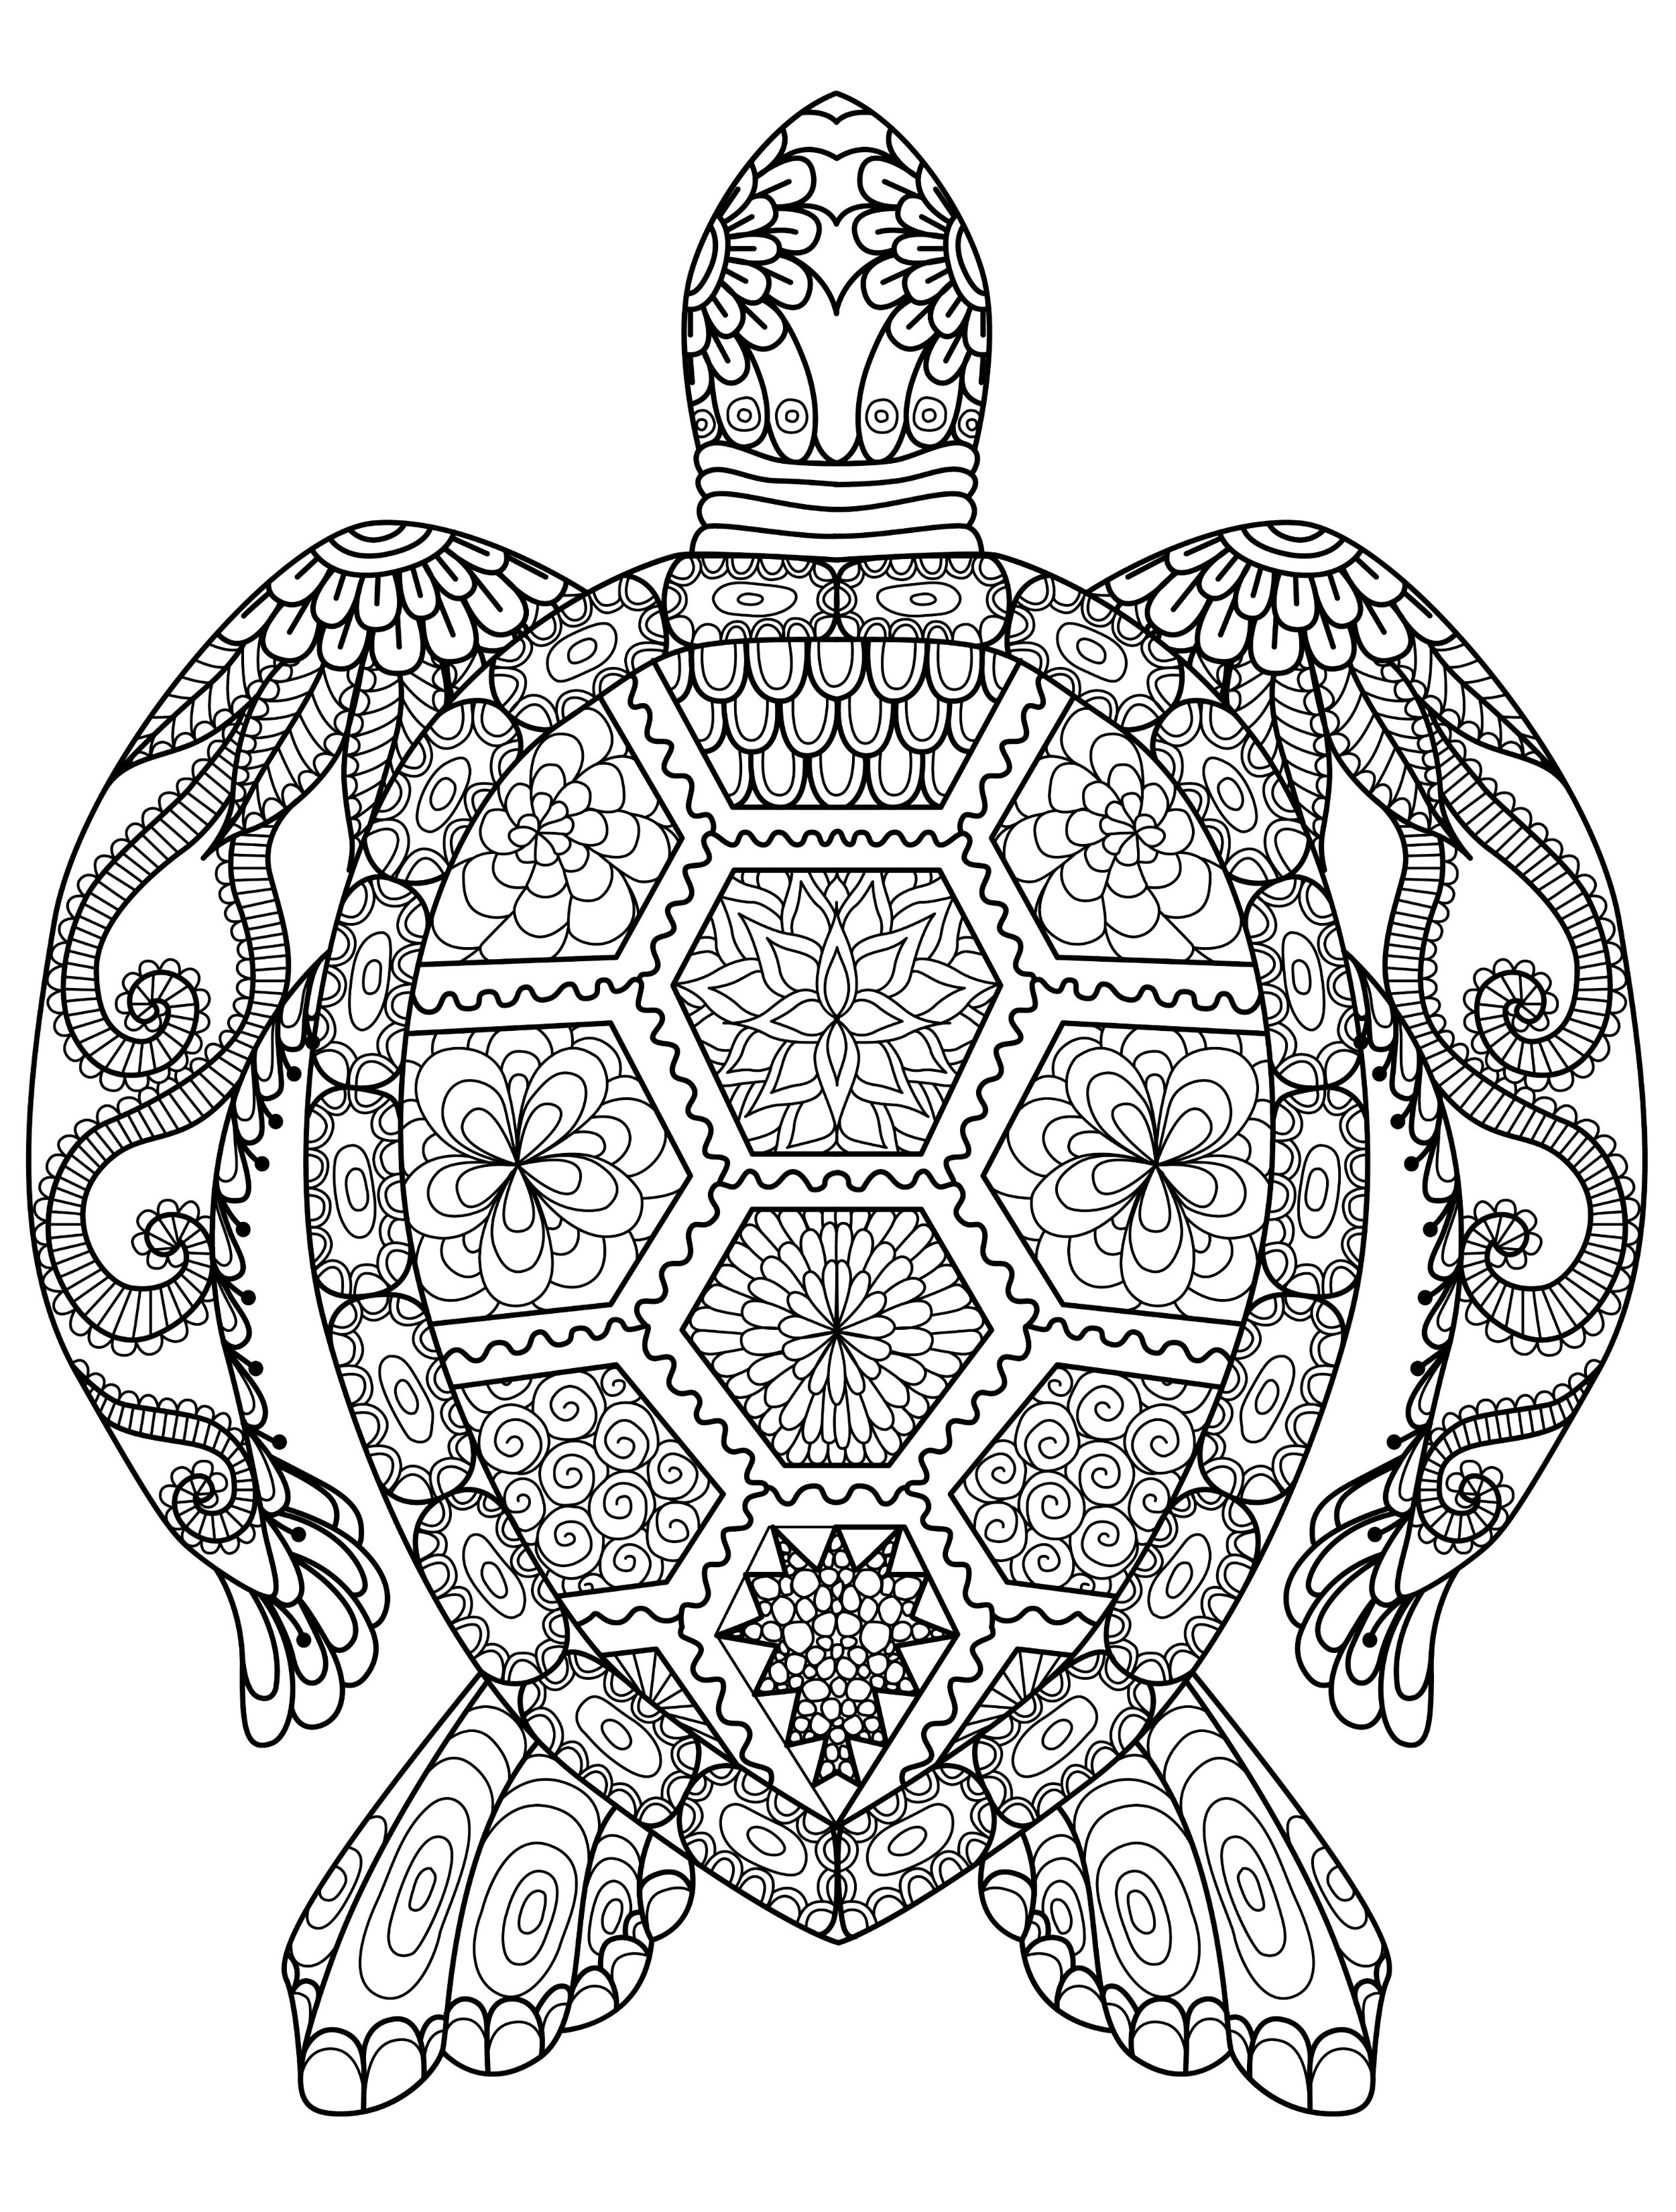 Online Coloring Pages For Adults 55 Best Animal Coloring Pages Adults  Online Coloring Pages - birijus.com